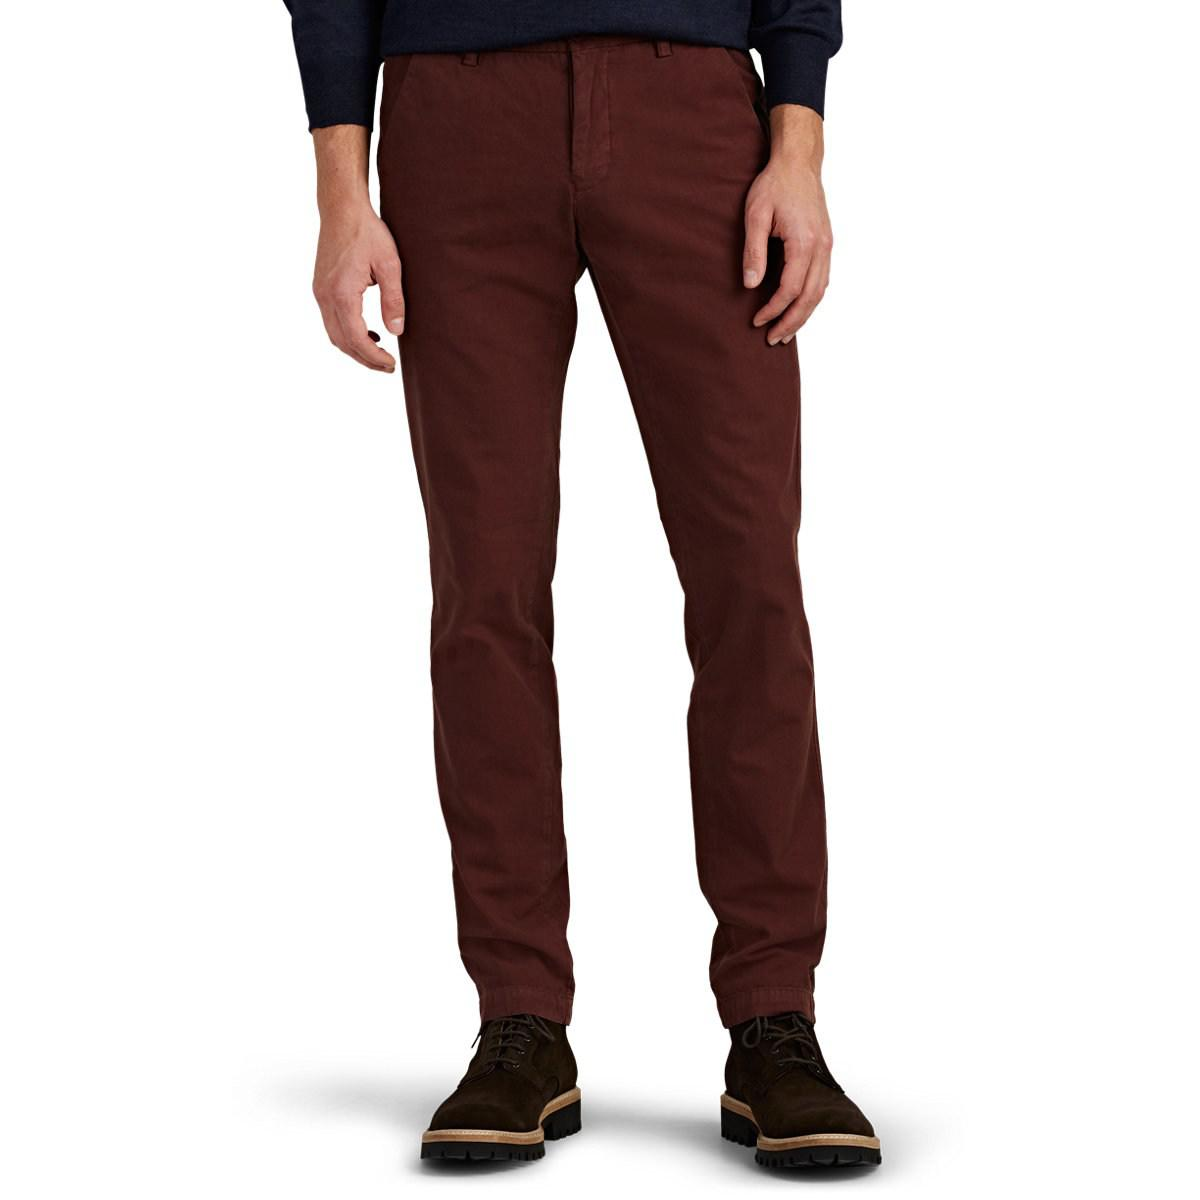 new arrival 537d5 8484e barneys-new-york-Wine-Cotton-Twill-Slim-Trousers.jpeg